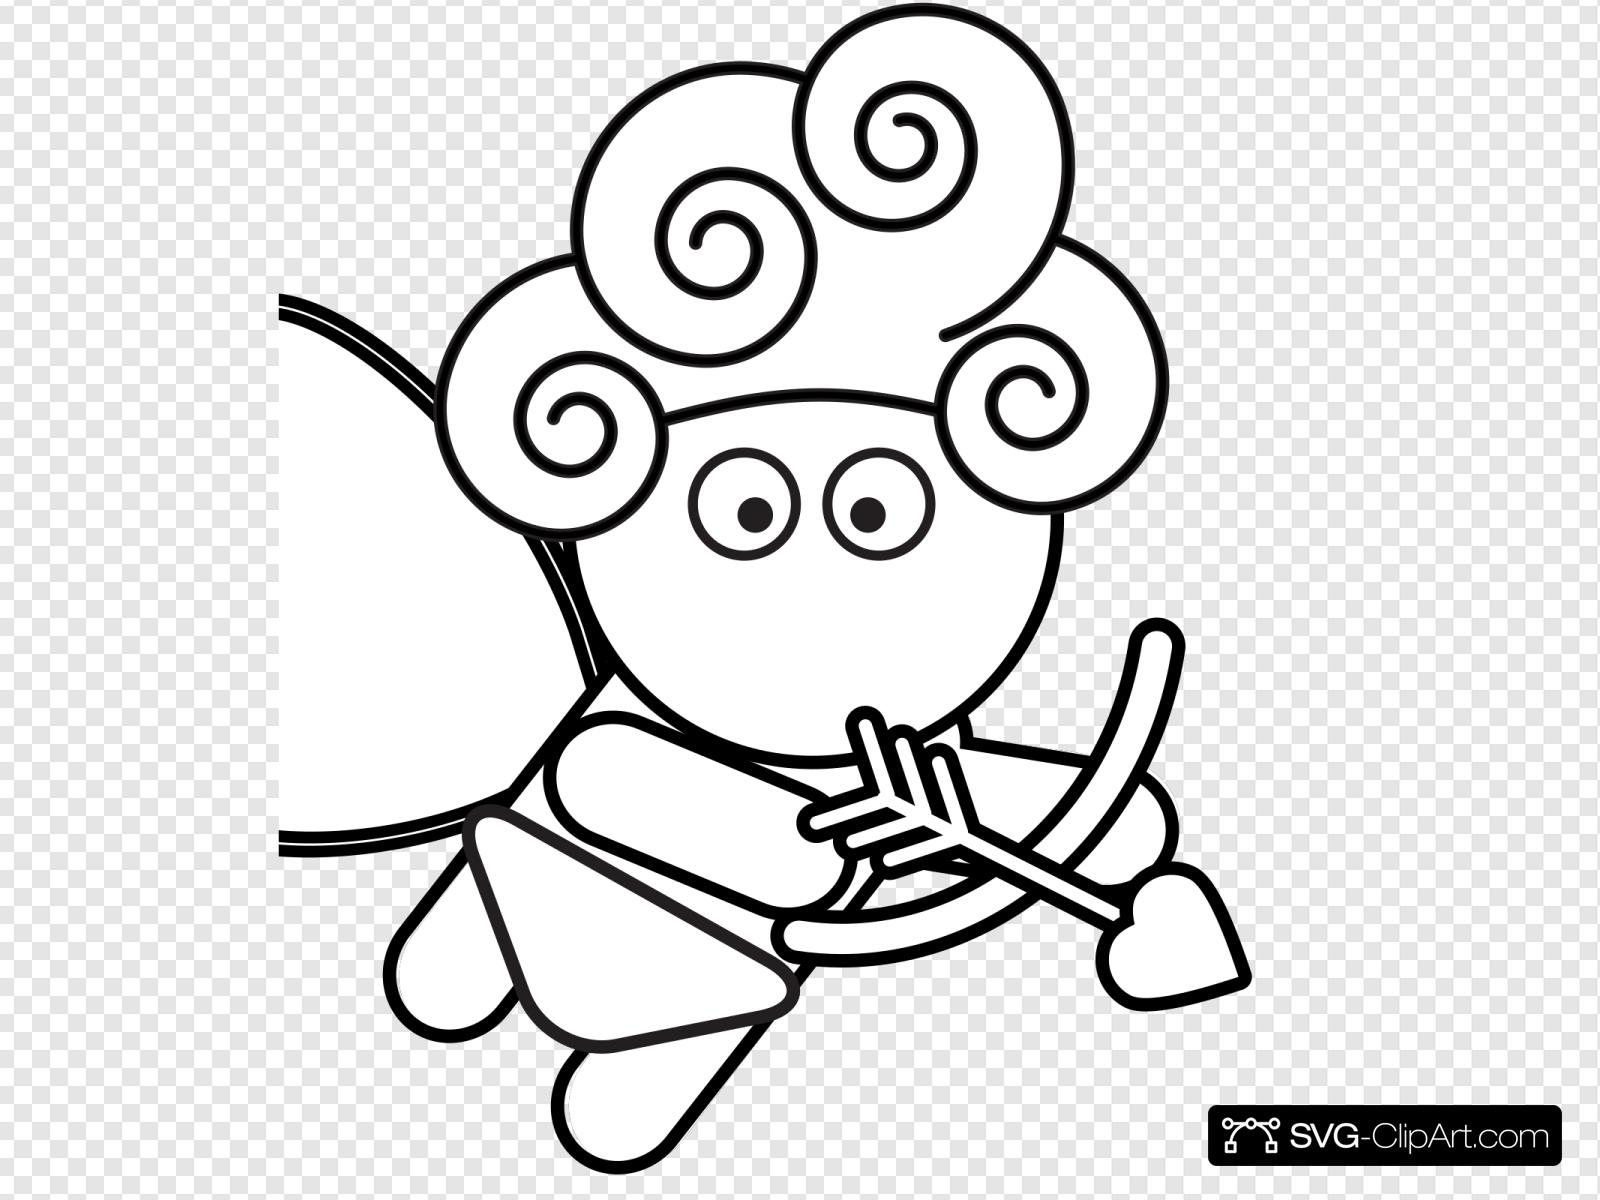 Outline Cupid Shooter Svg Vector Outline Cupid Shooter